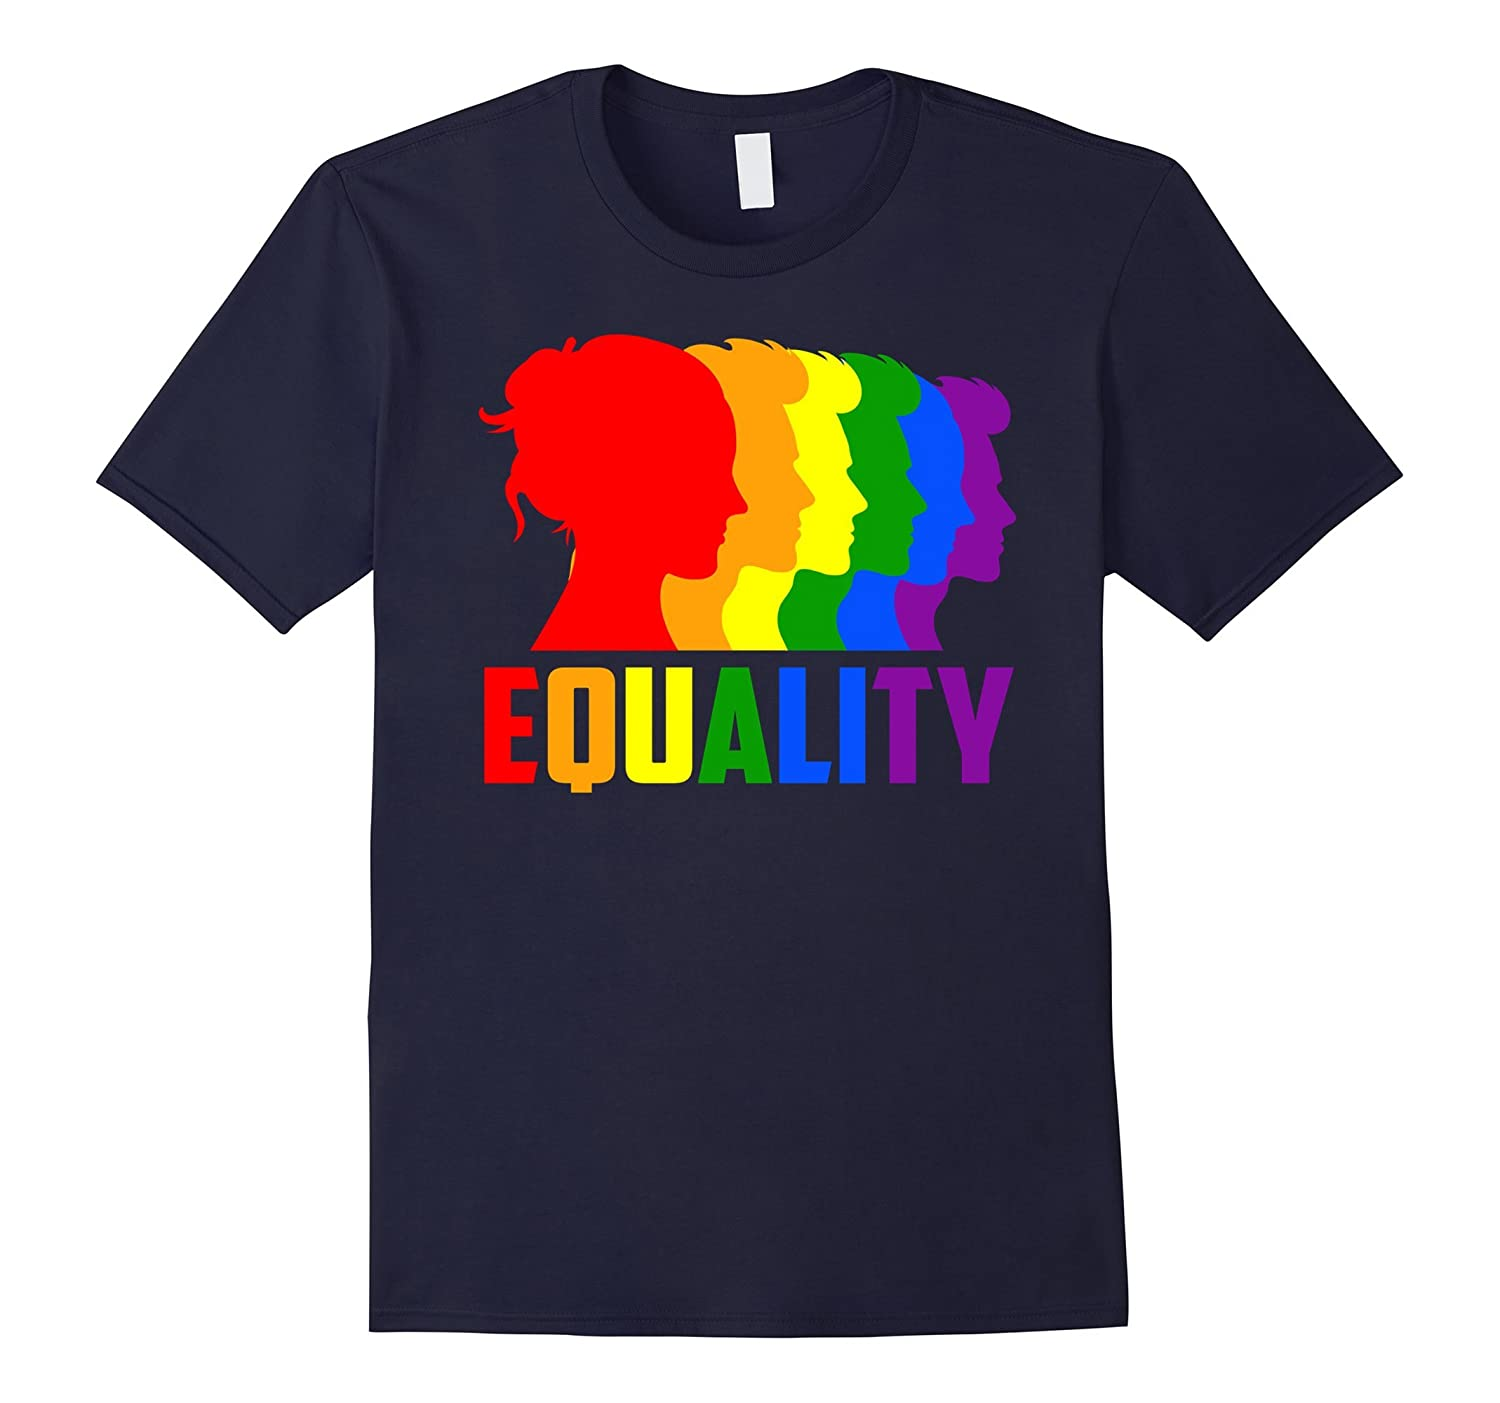 2017 National Equality Pride March Shirt LGBT Pride Shirt-TH